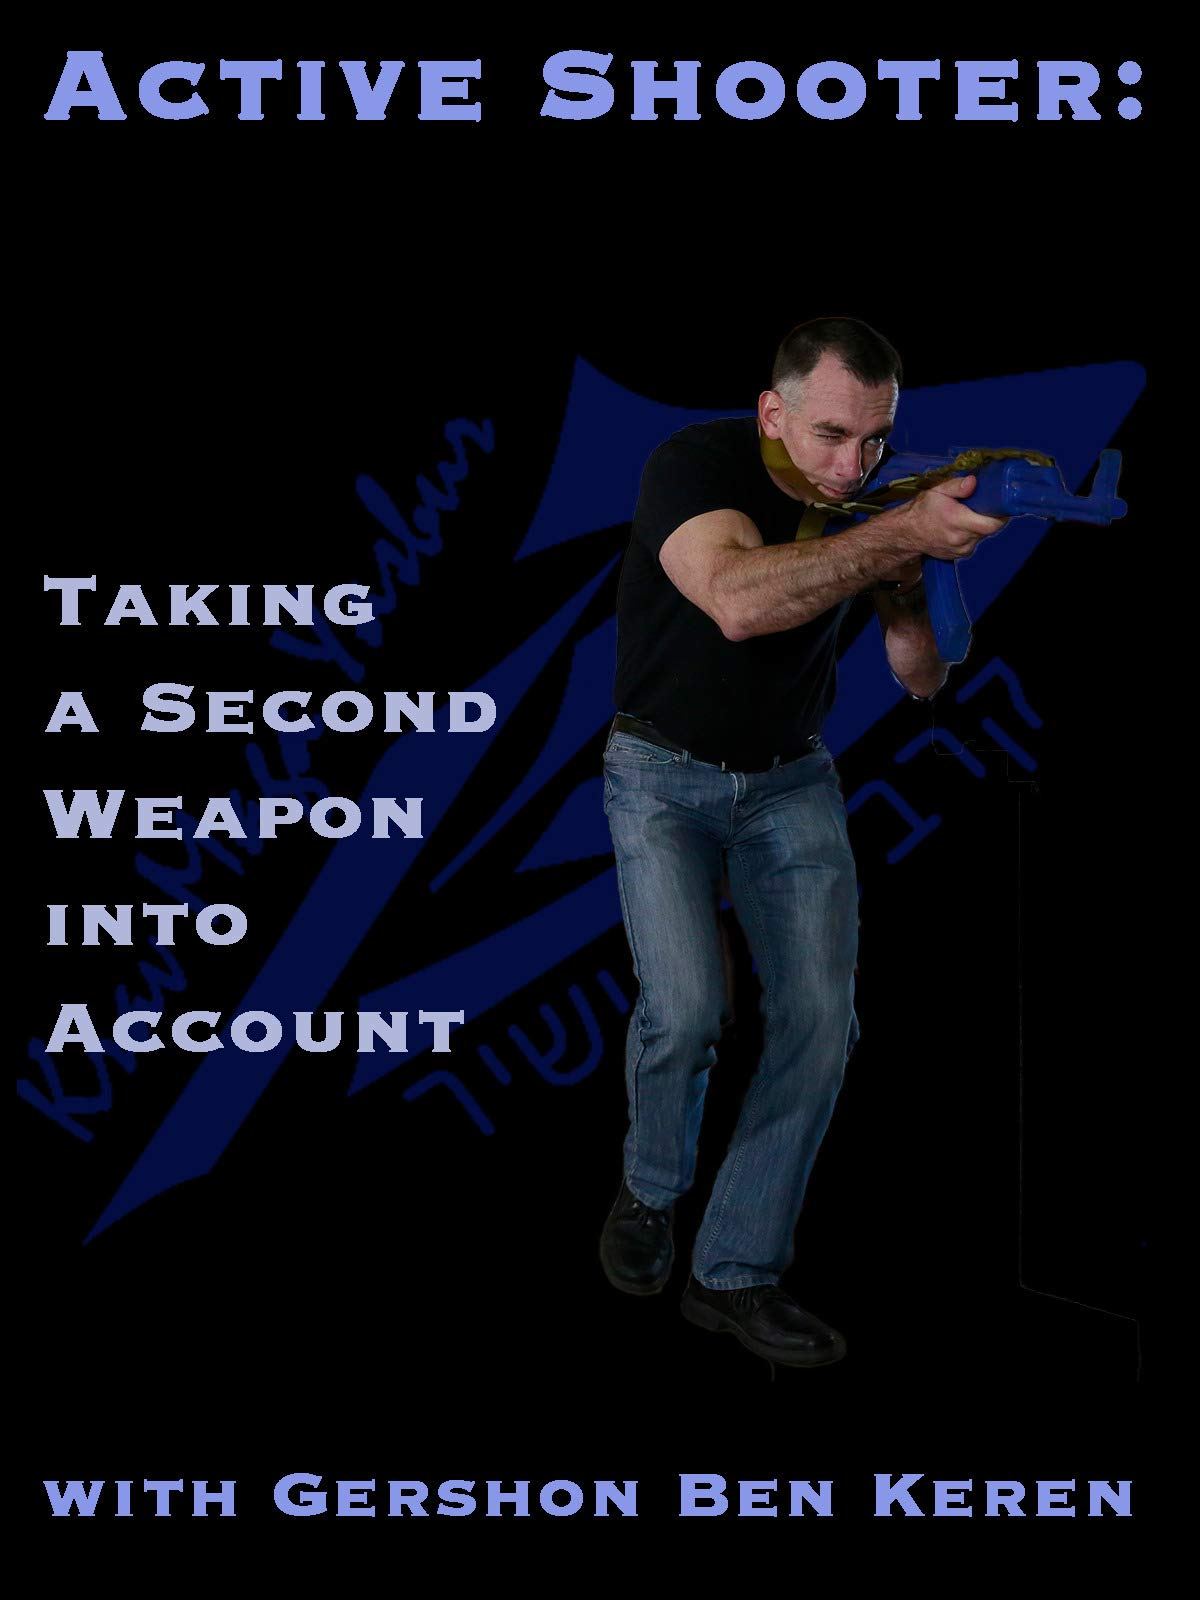 Active Shooter - Taking into Account a Second Weapon